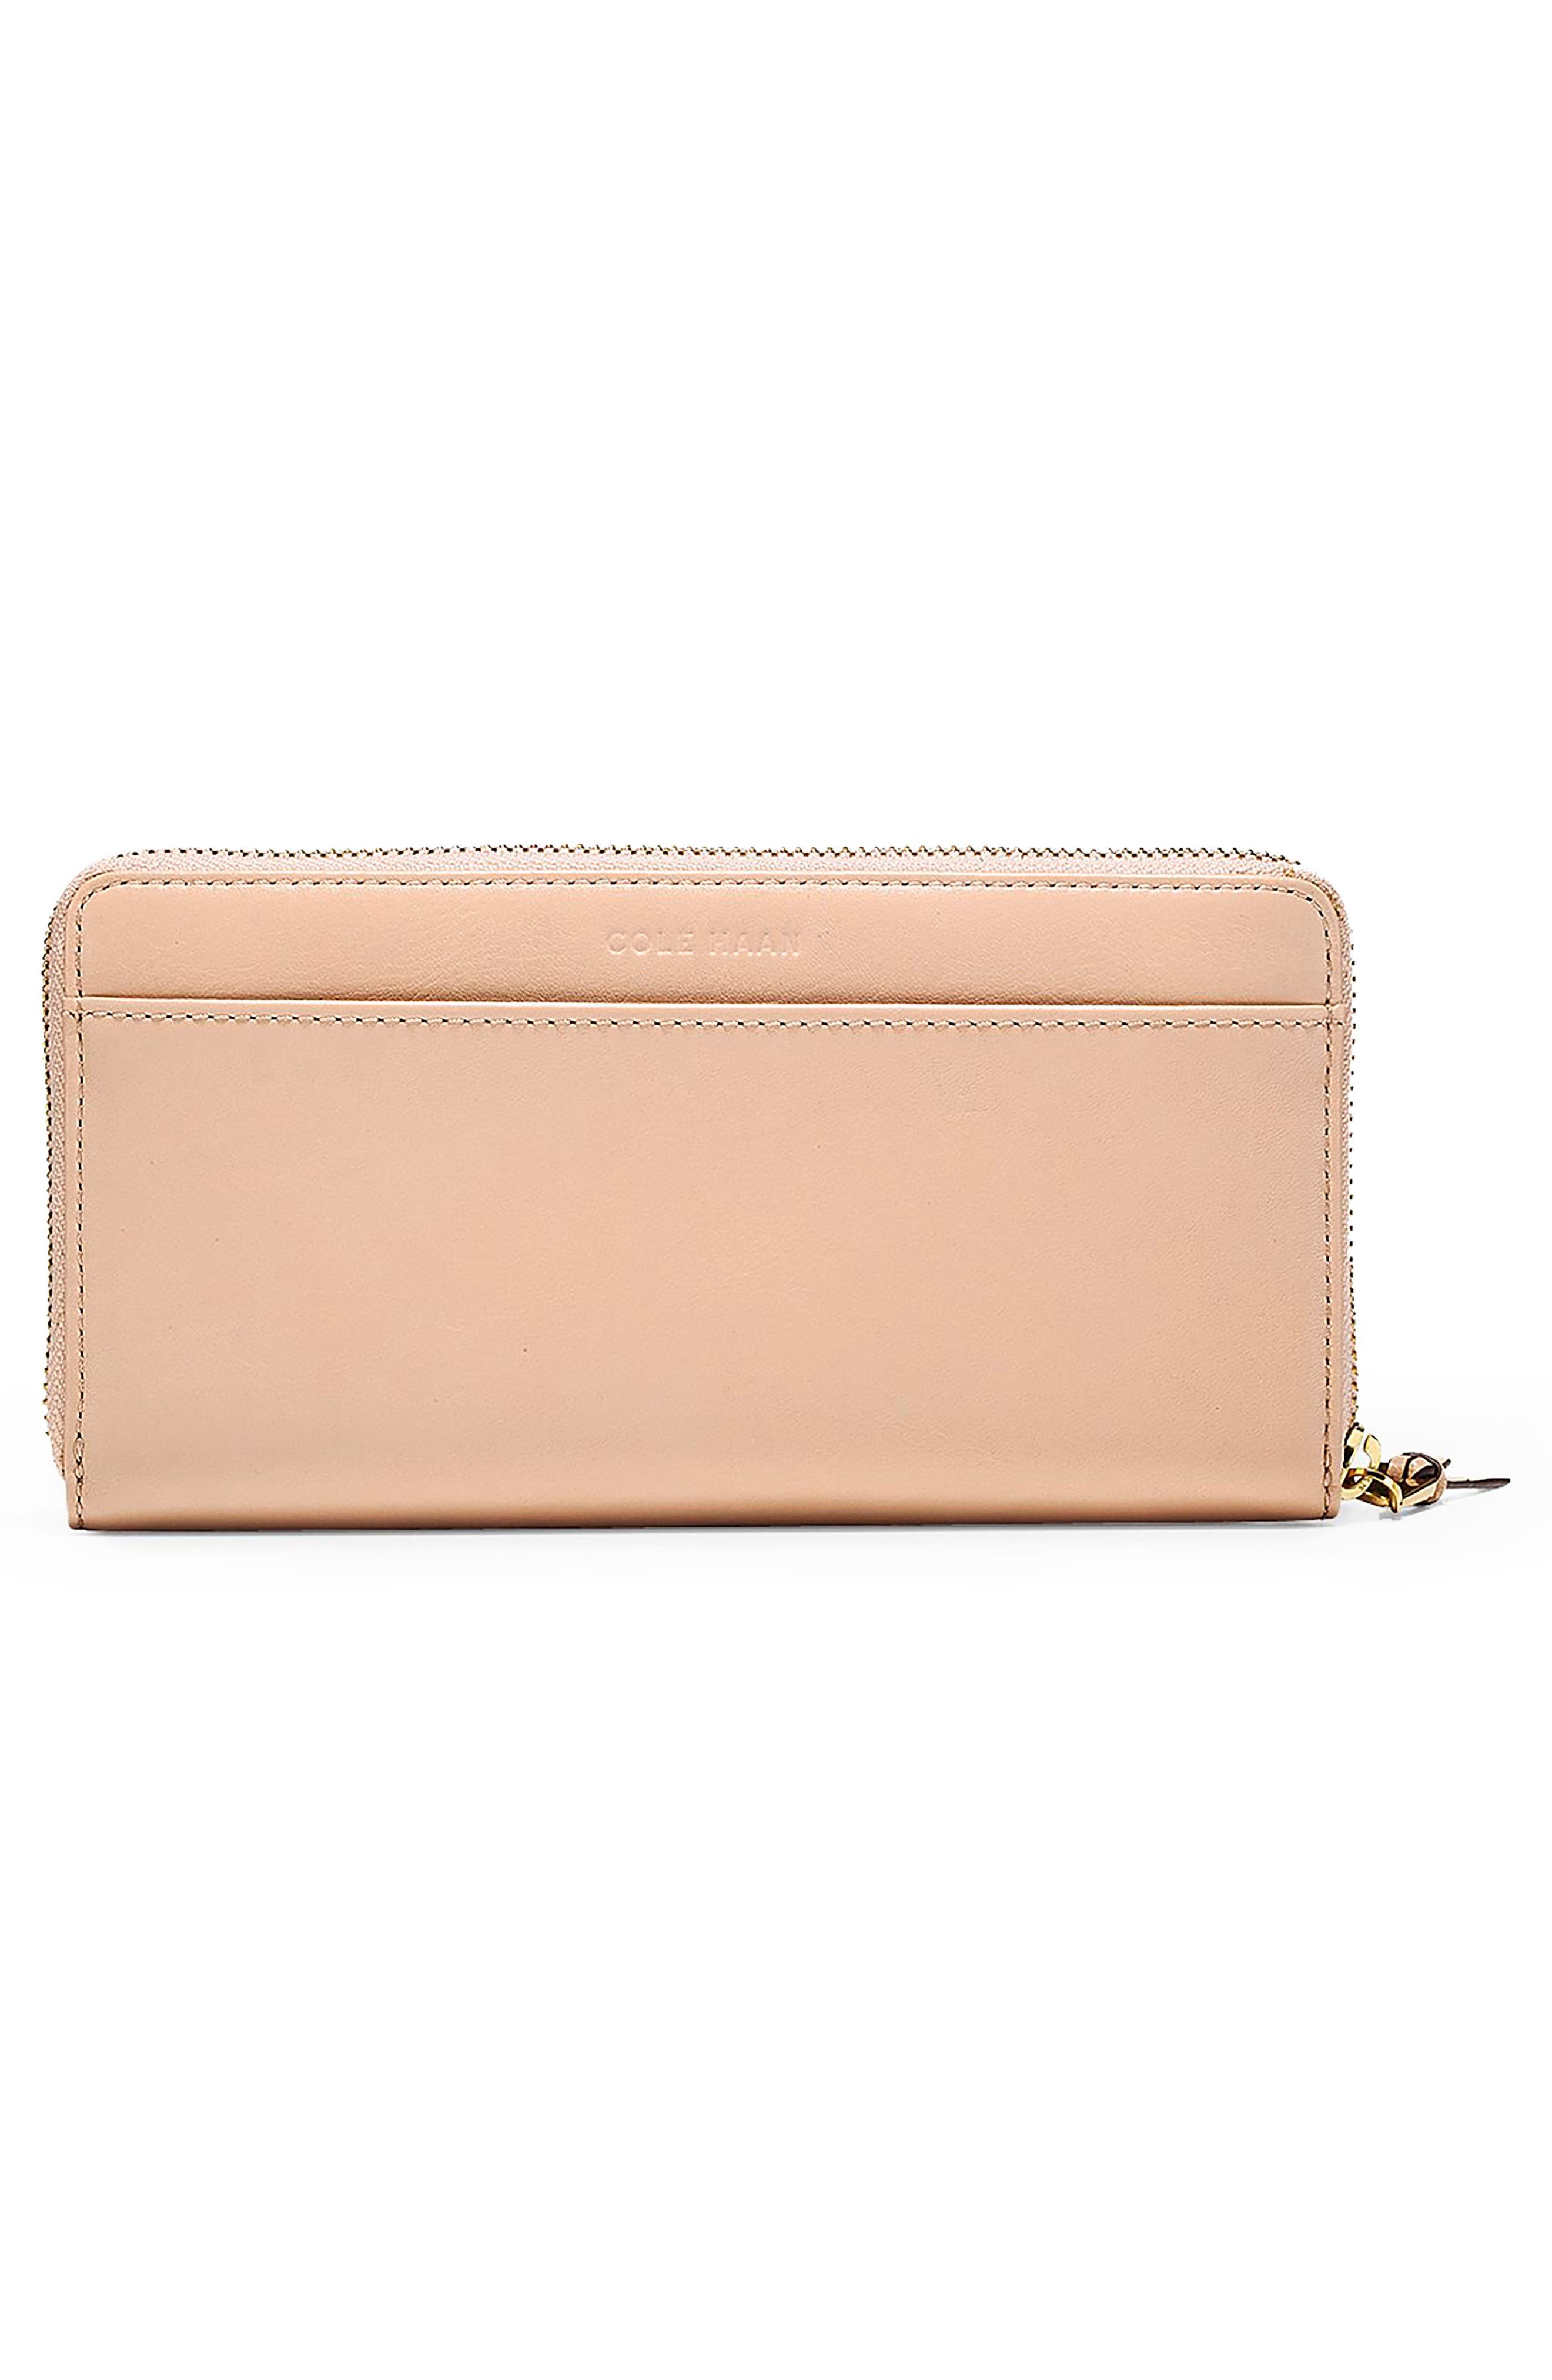 Marli Studded Metallic Leather Continental Wallet,                             Alternate thumbnail 3, color,                             Pink Nude